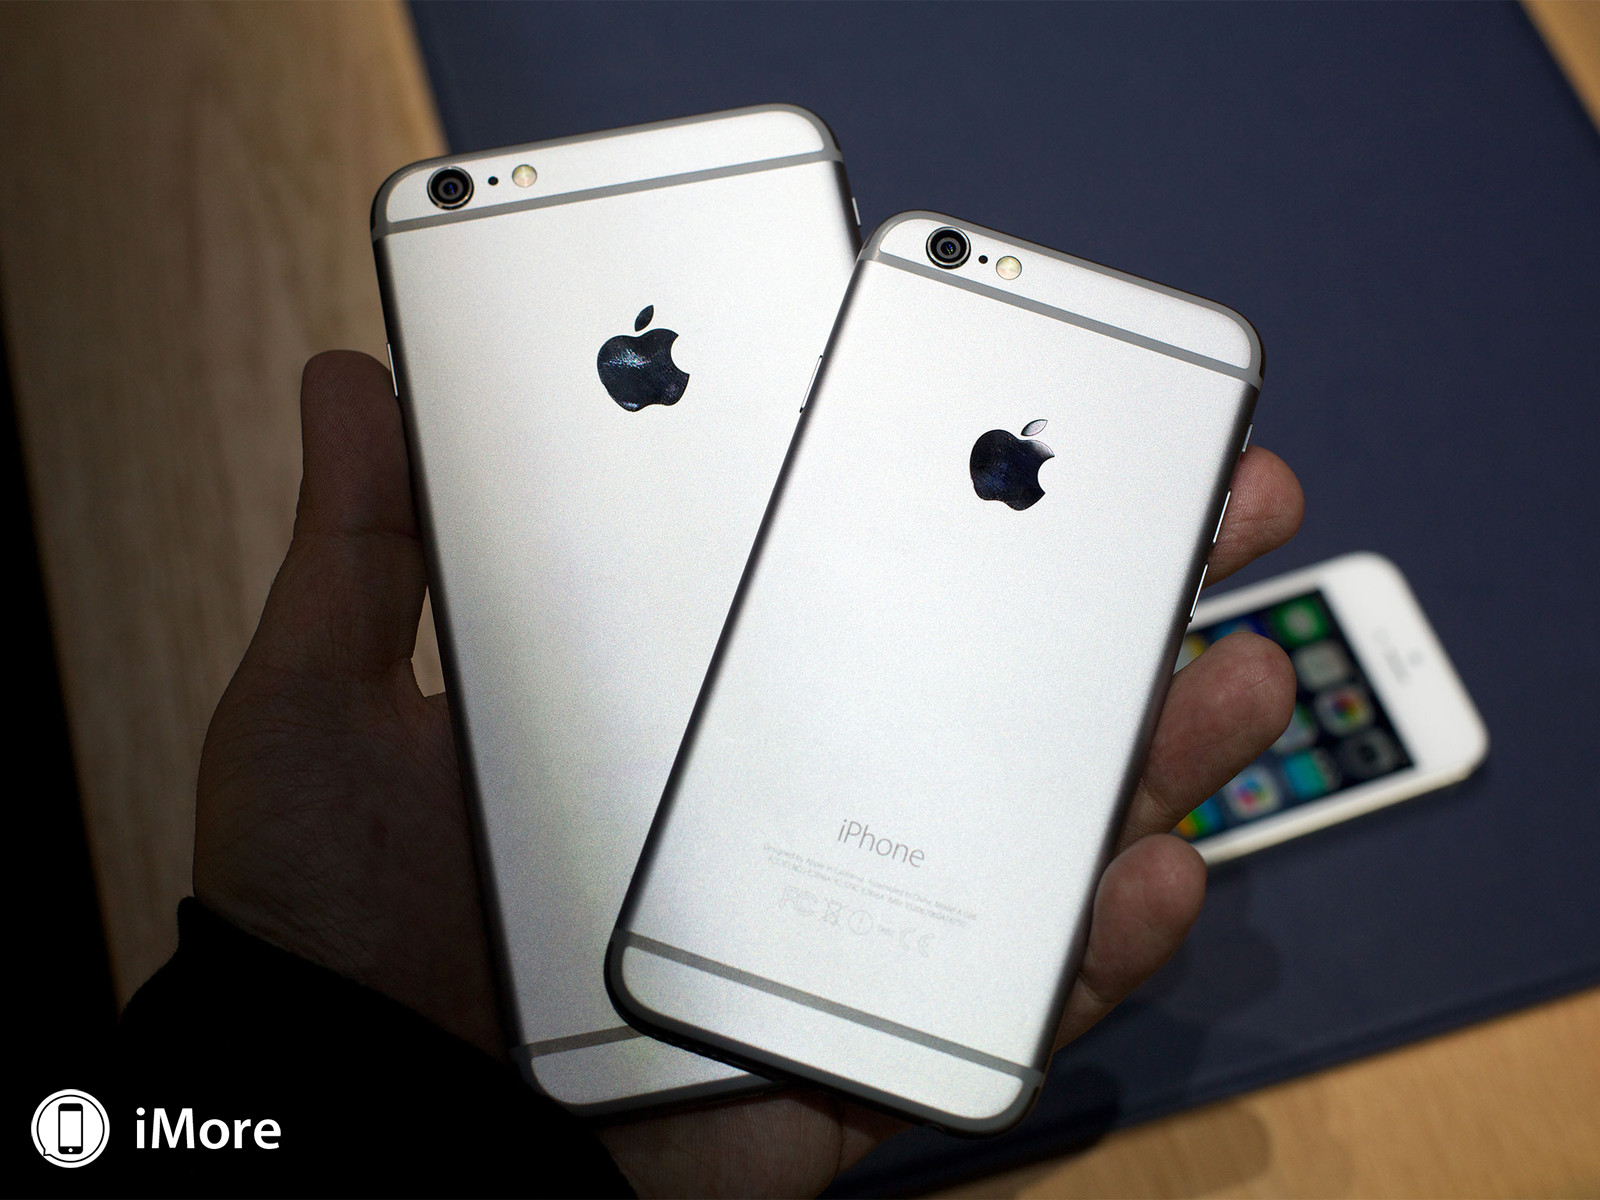 iphone_6_iphone_6_plus_backs_hands_on